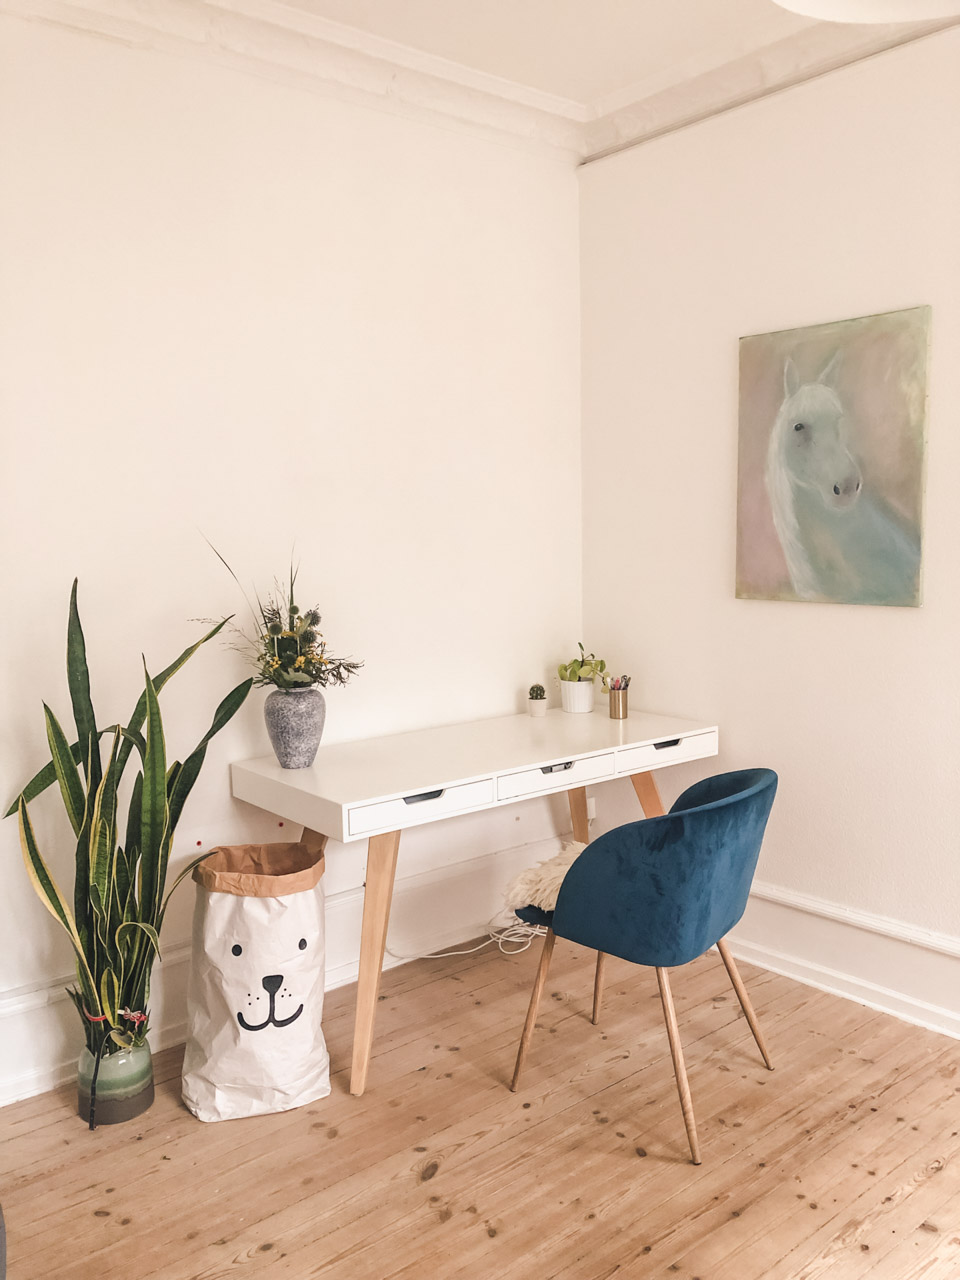 A desk with a chair inside a traditional Scandinavian apartment